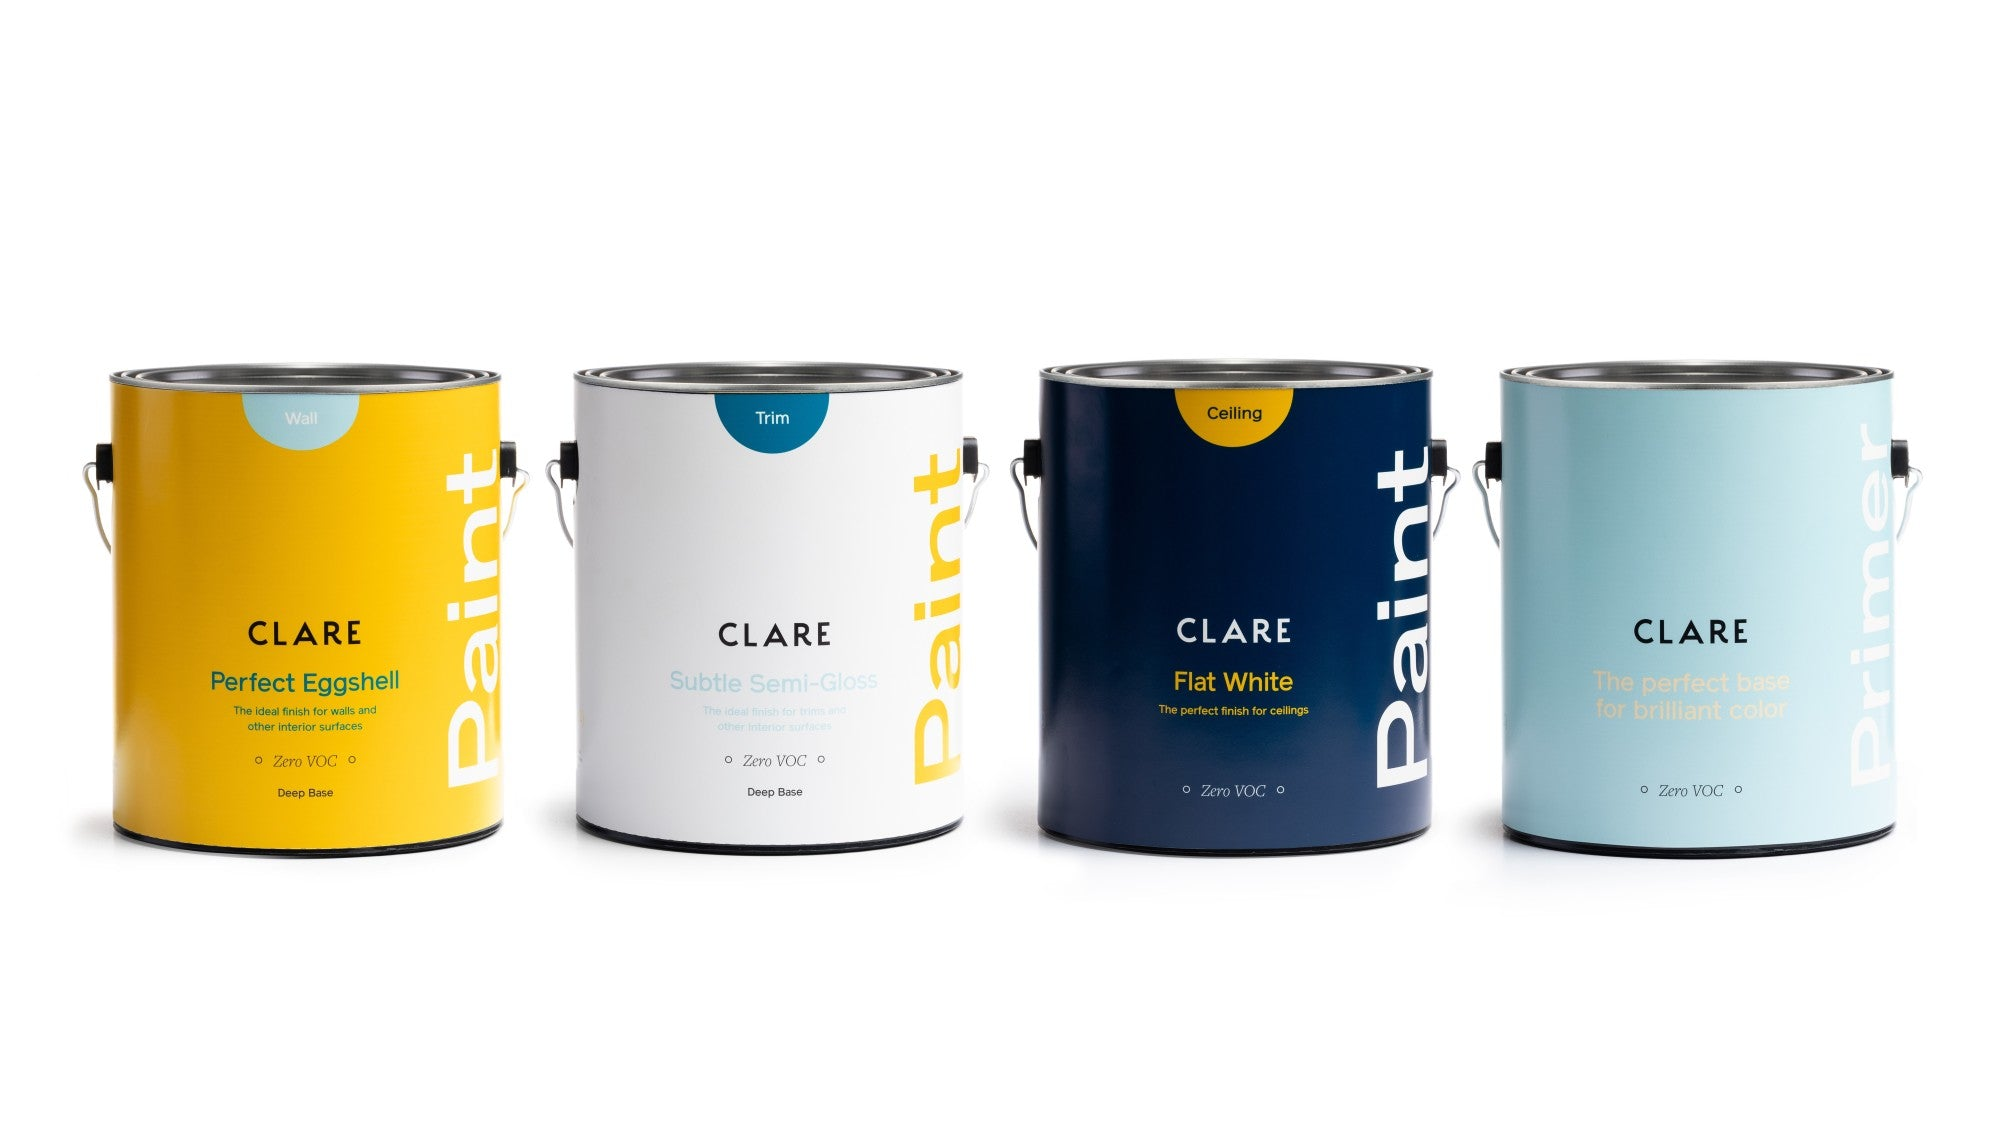 Clare paint cans. Modern paint packaging. Premium paint is the key to a flawless paint job